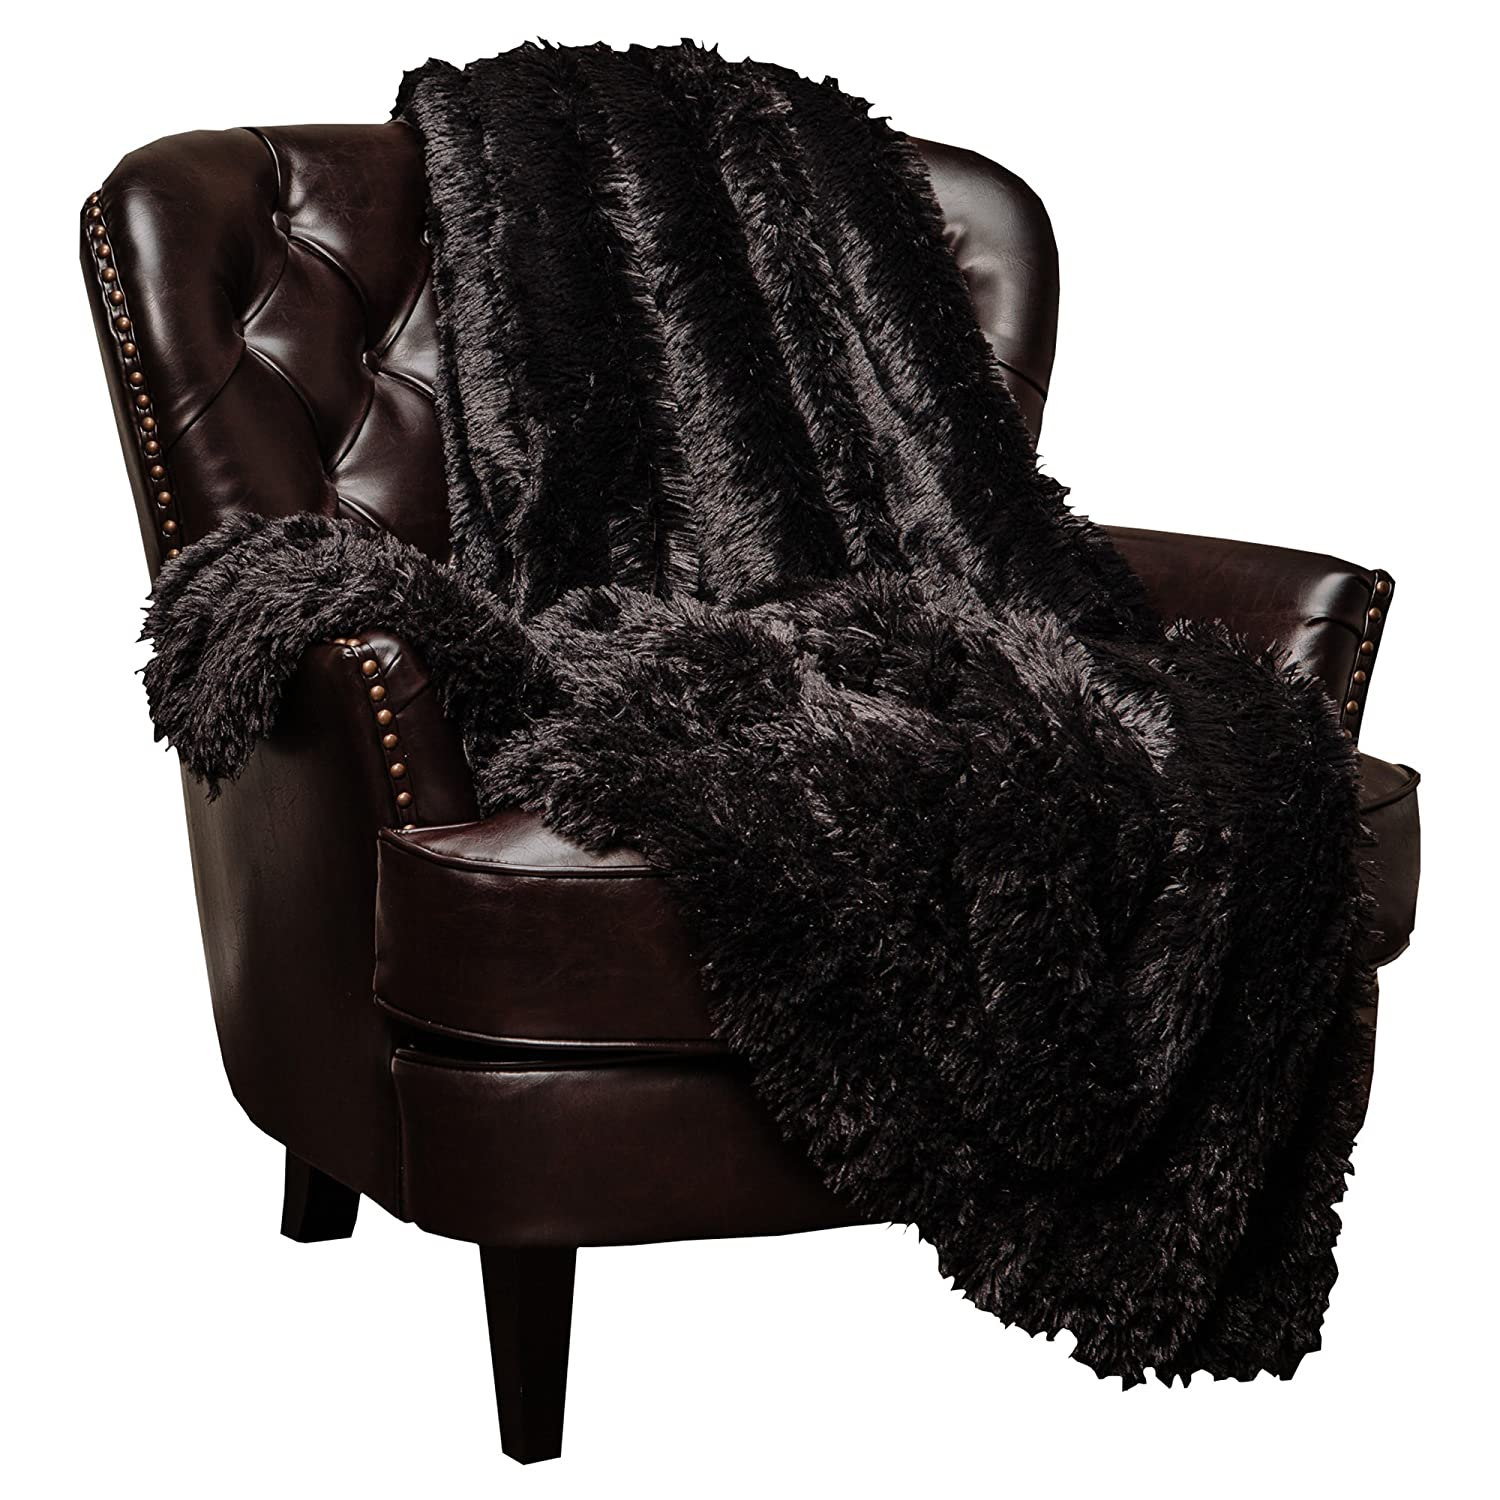 Chanasya Shaggy Longfur Faux Fur Throw Blanket - Fuzzy Lightweight Plush Sherpa Fleece Microfiber Blanket - for Couch Bed Chair Photo Props (60x70 Inches) Black